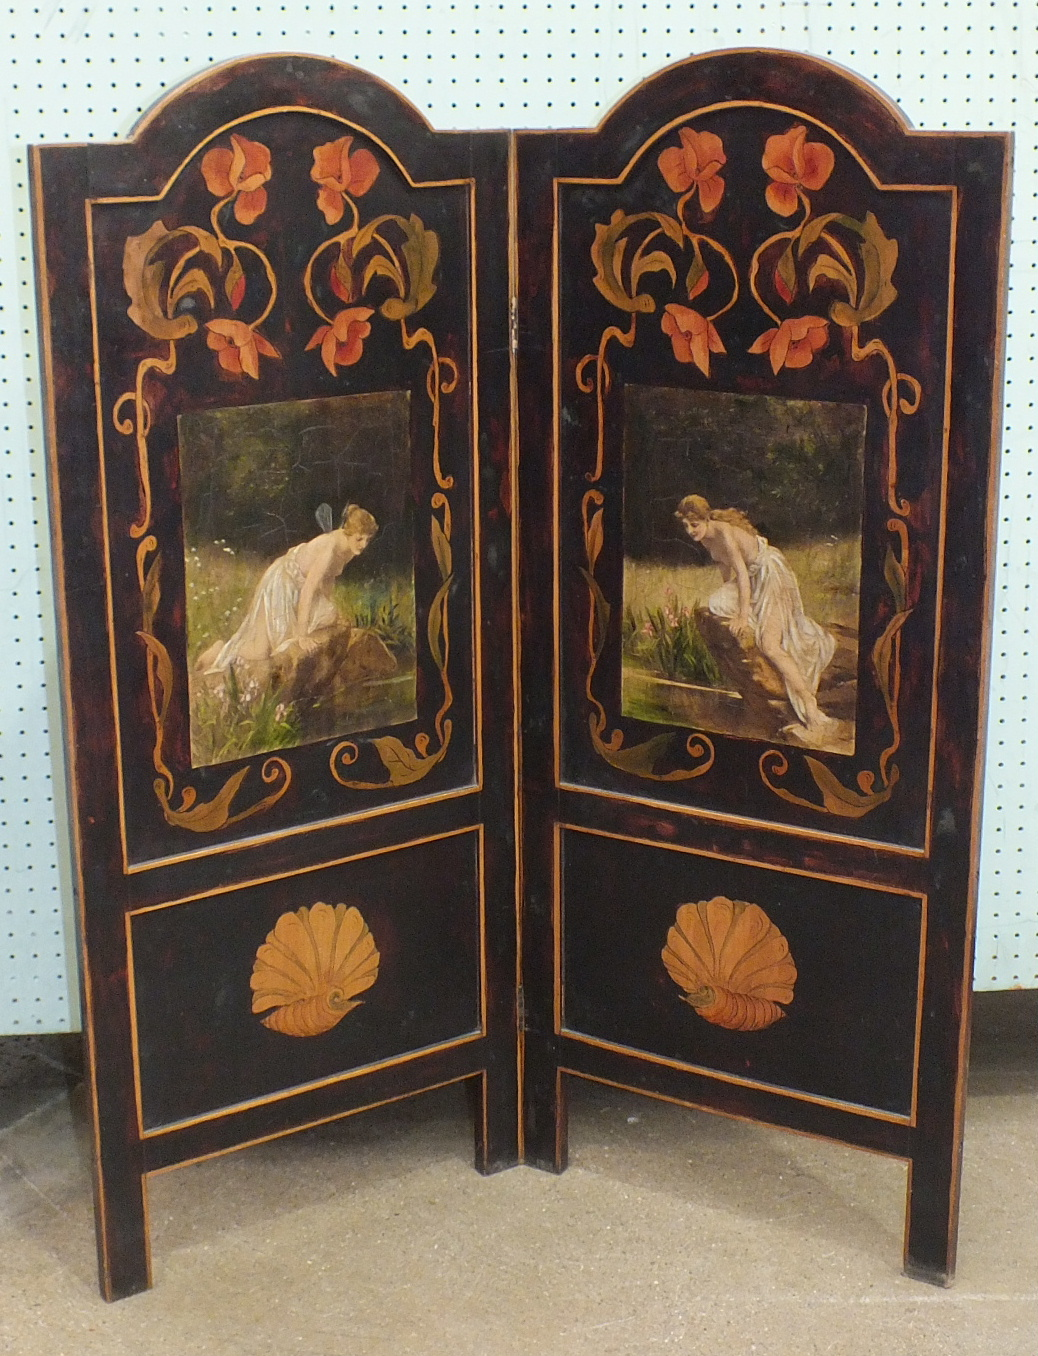 Lot 47 - An early-20th century Art-Nouveau-style two-fold screen decorated with over-painted prints of